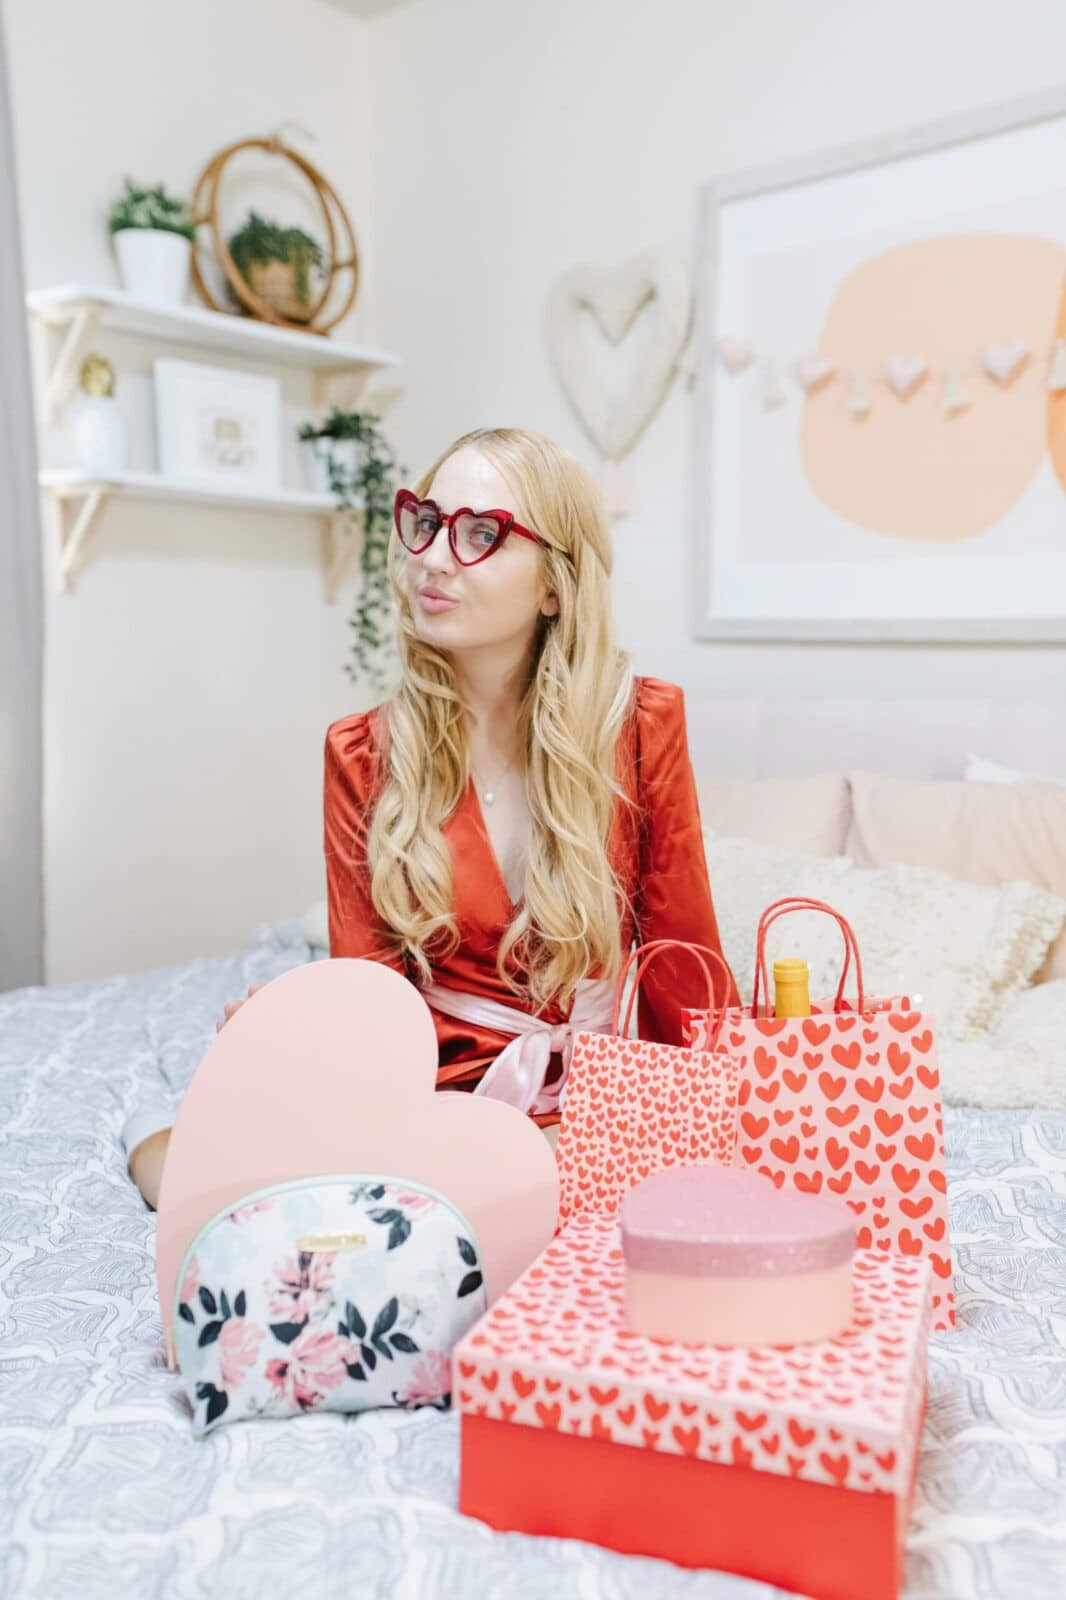 Valentine's Day Gift Ideas To Make Any Gal Feel Loved